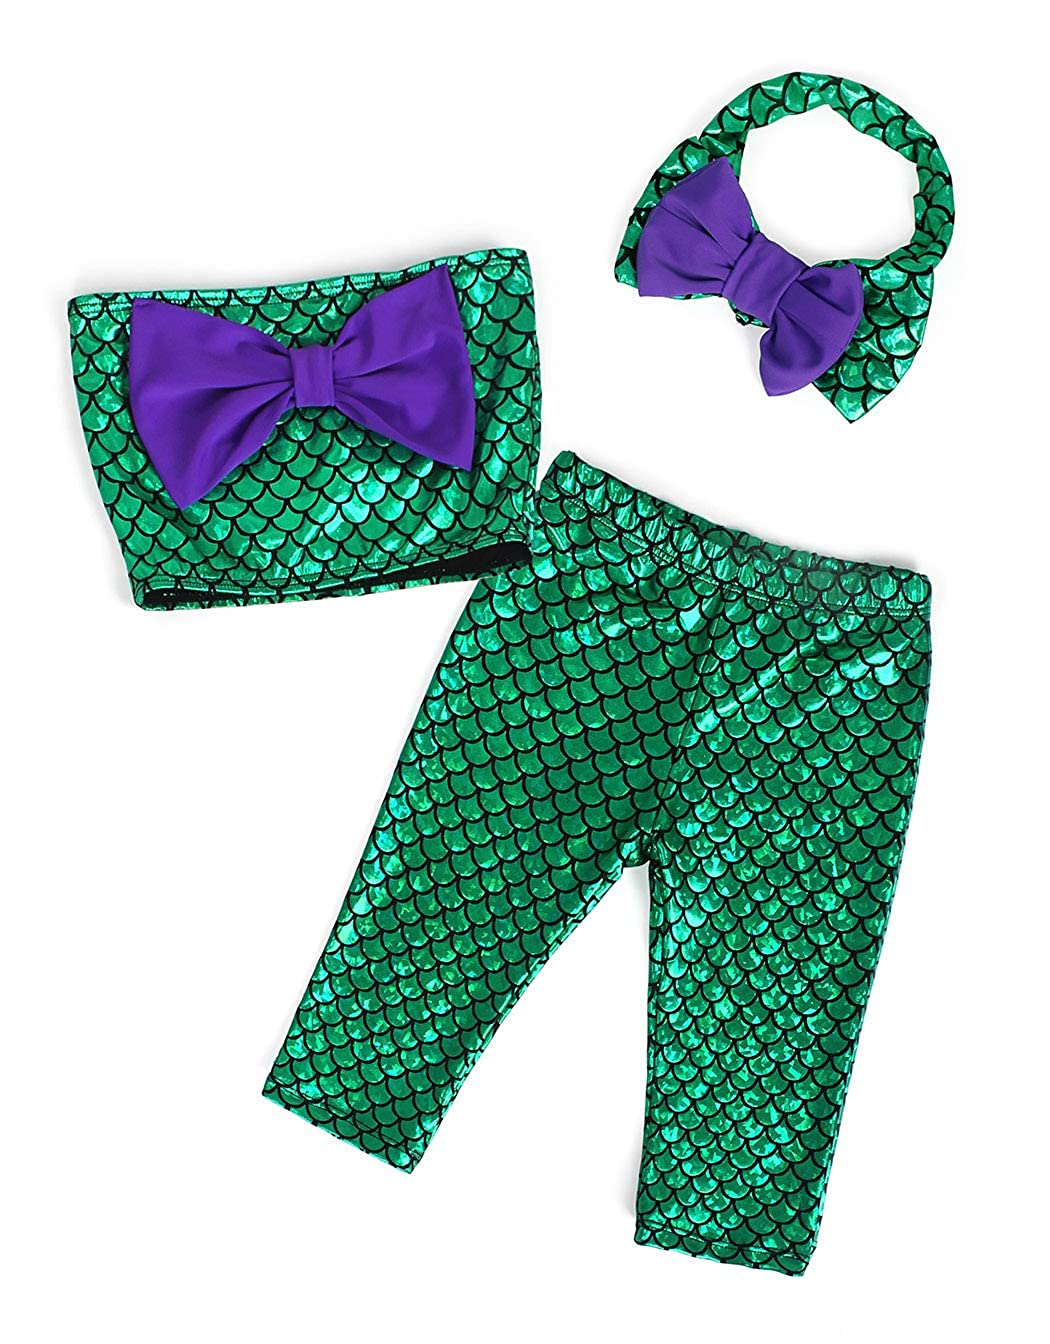 AmzBarley Princess Mermaid Costume for Girls Fancy Party Sequins Dress